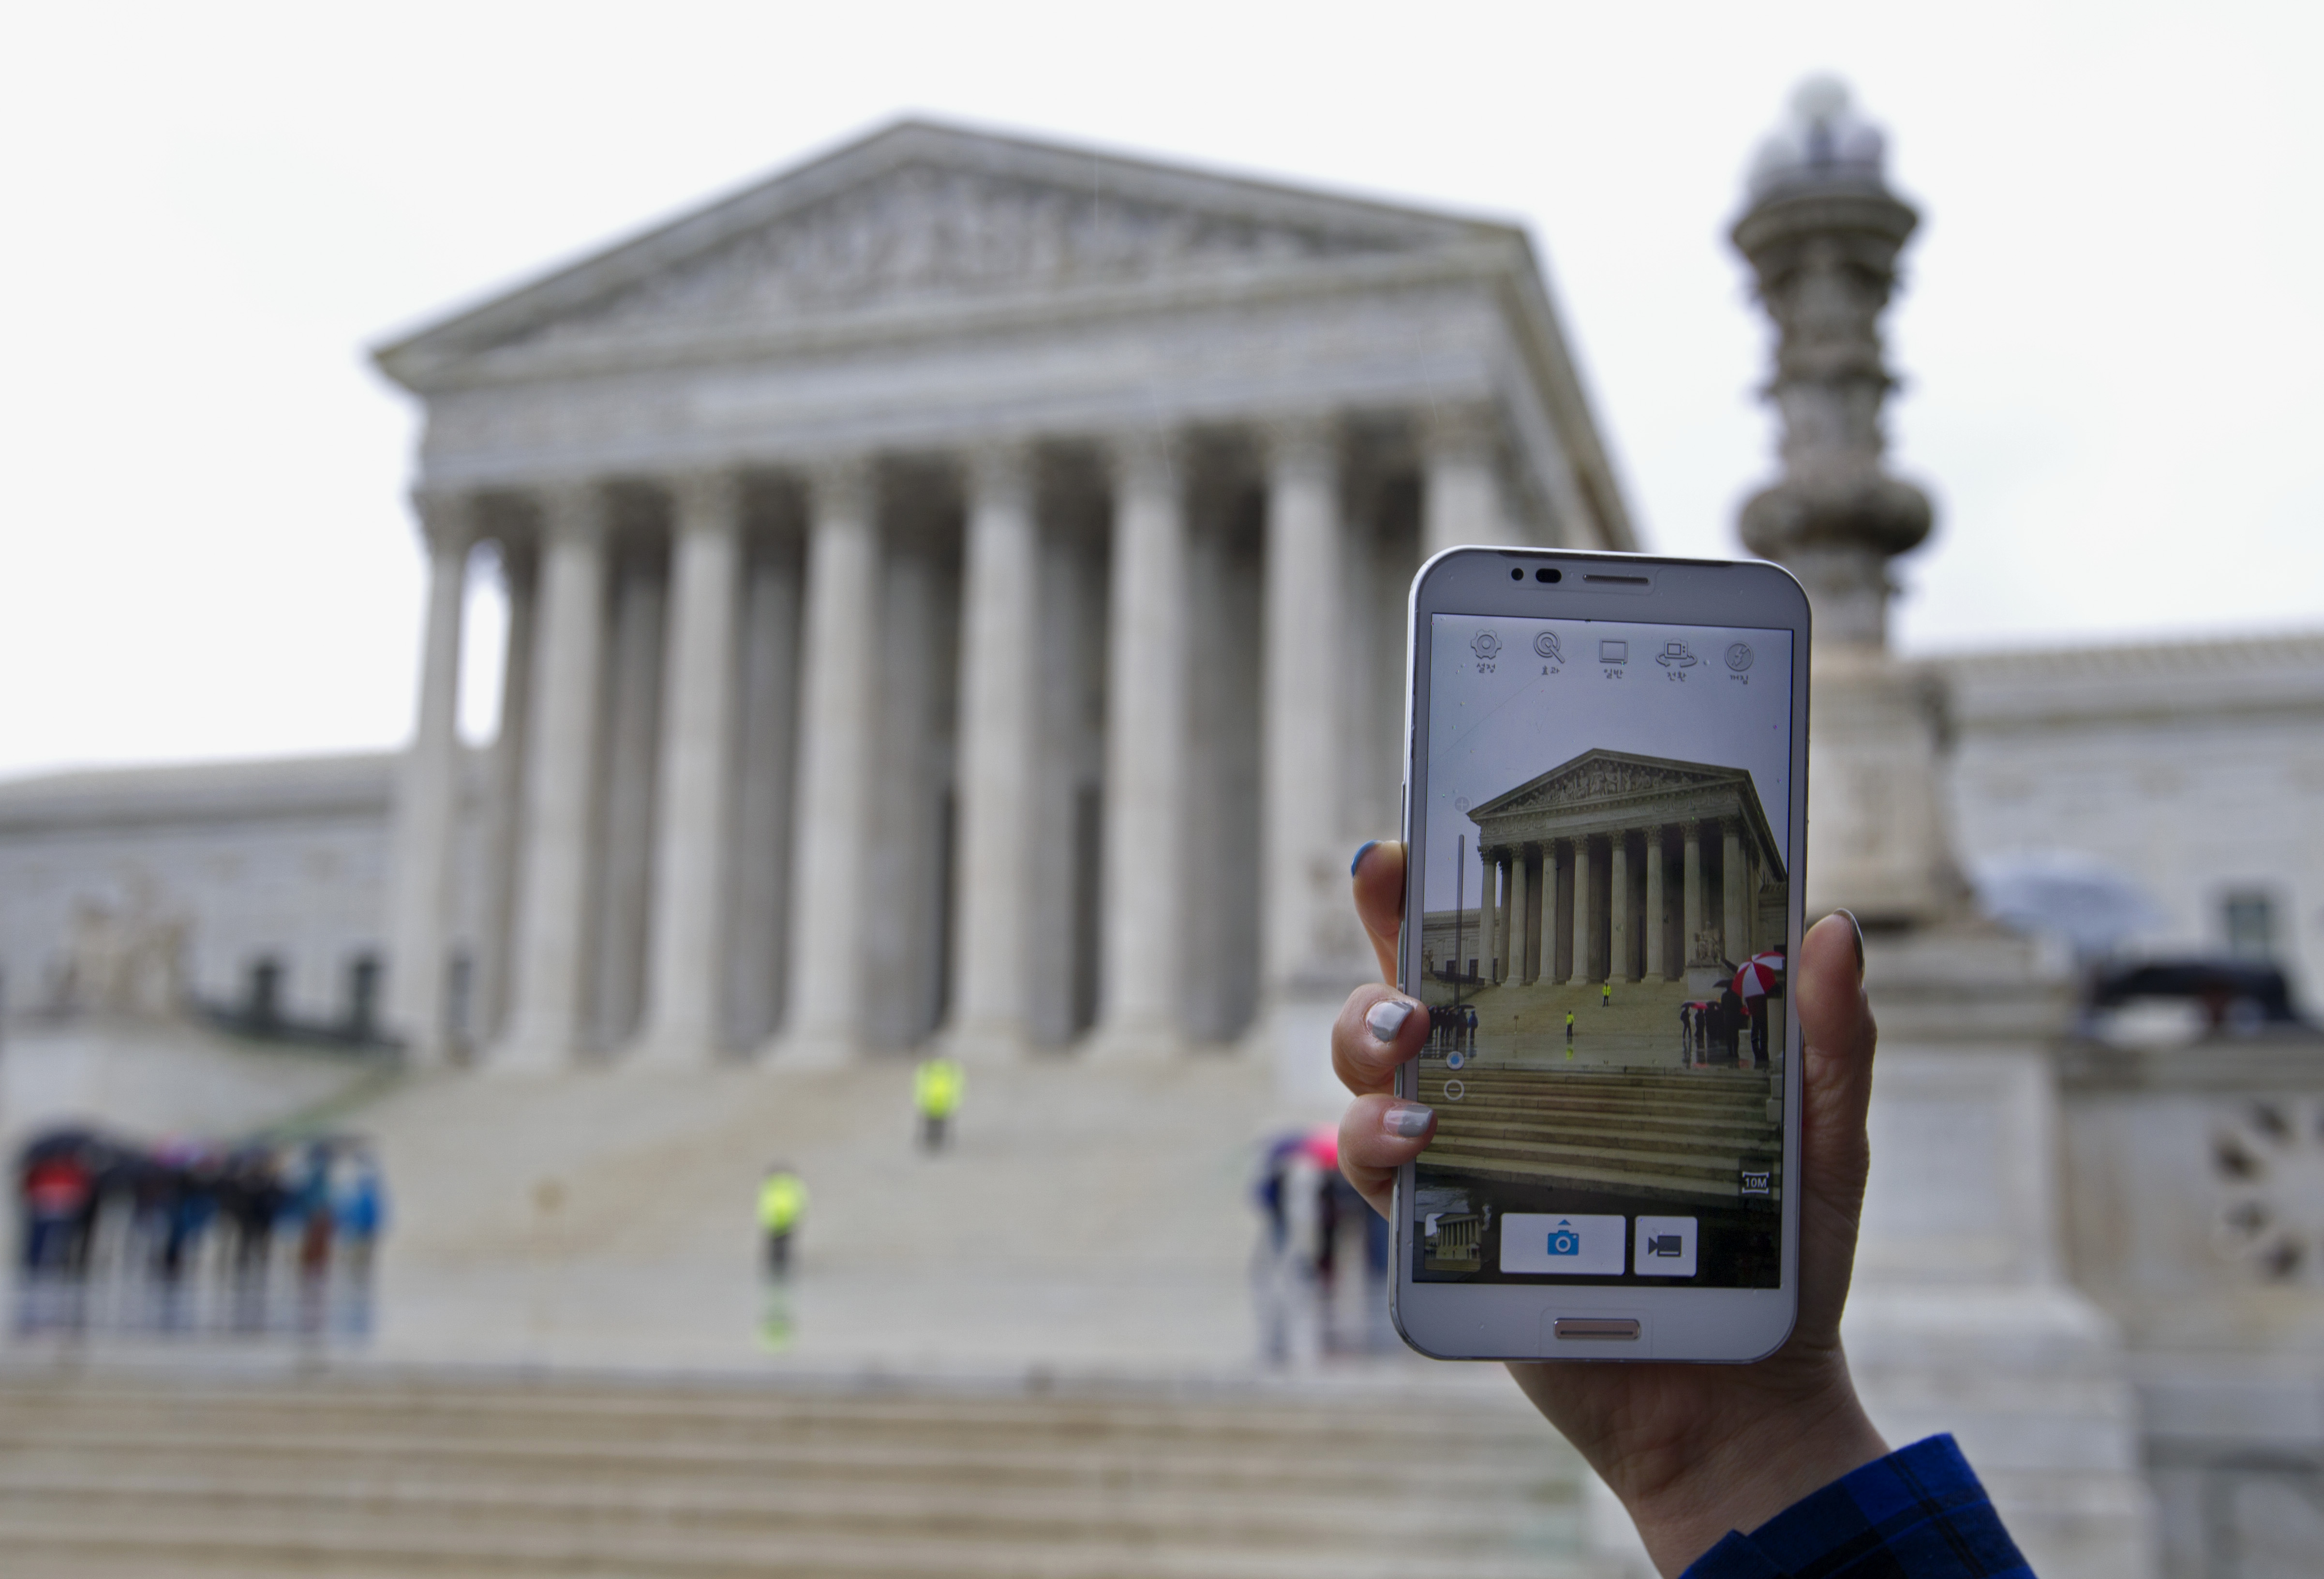 Supreme Court Says No to Warrantless Cellphone Searches by Police